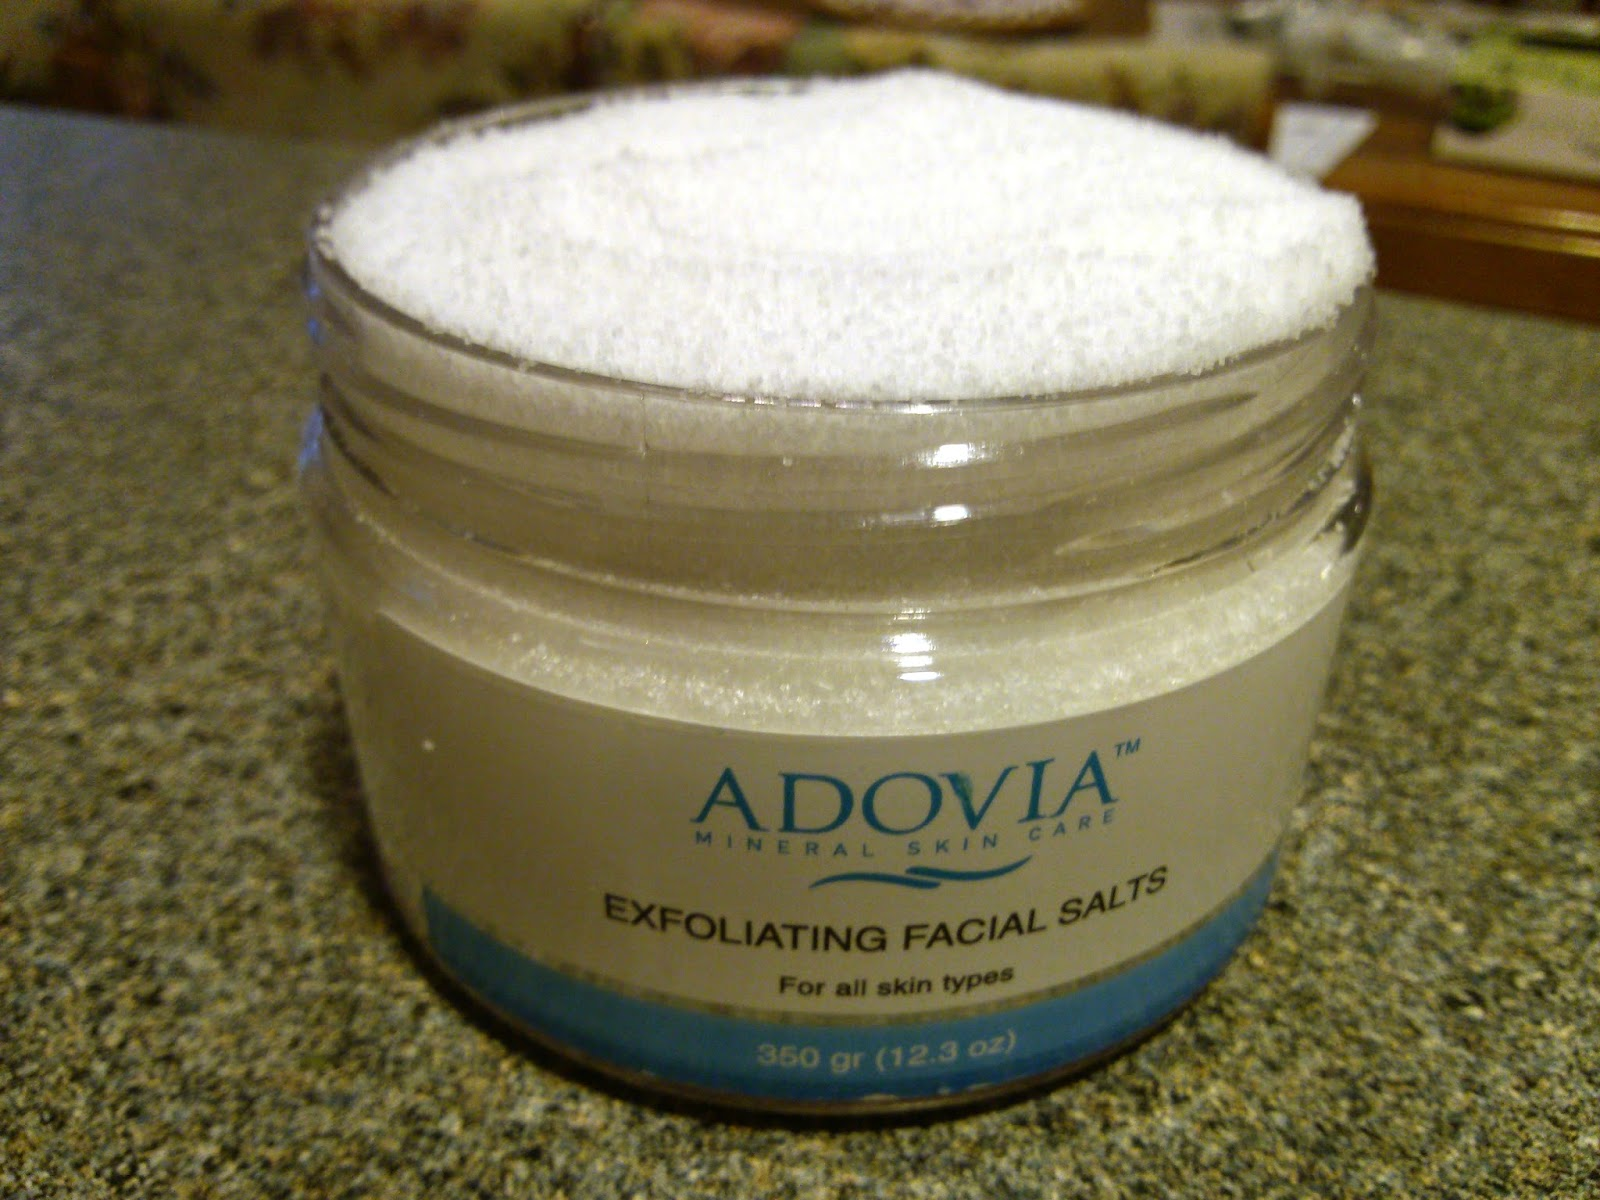 Adovia Exfoliating Facial Sea Salts Review